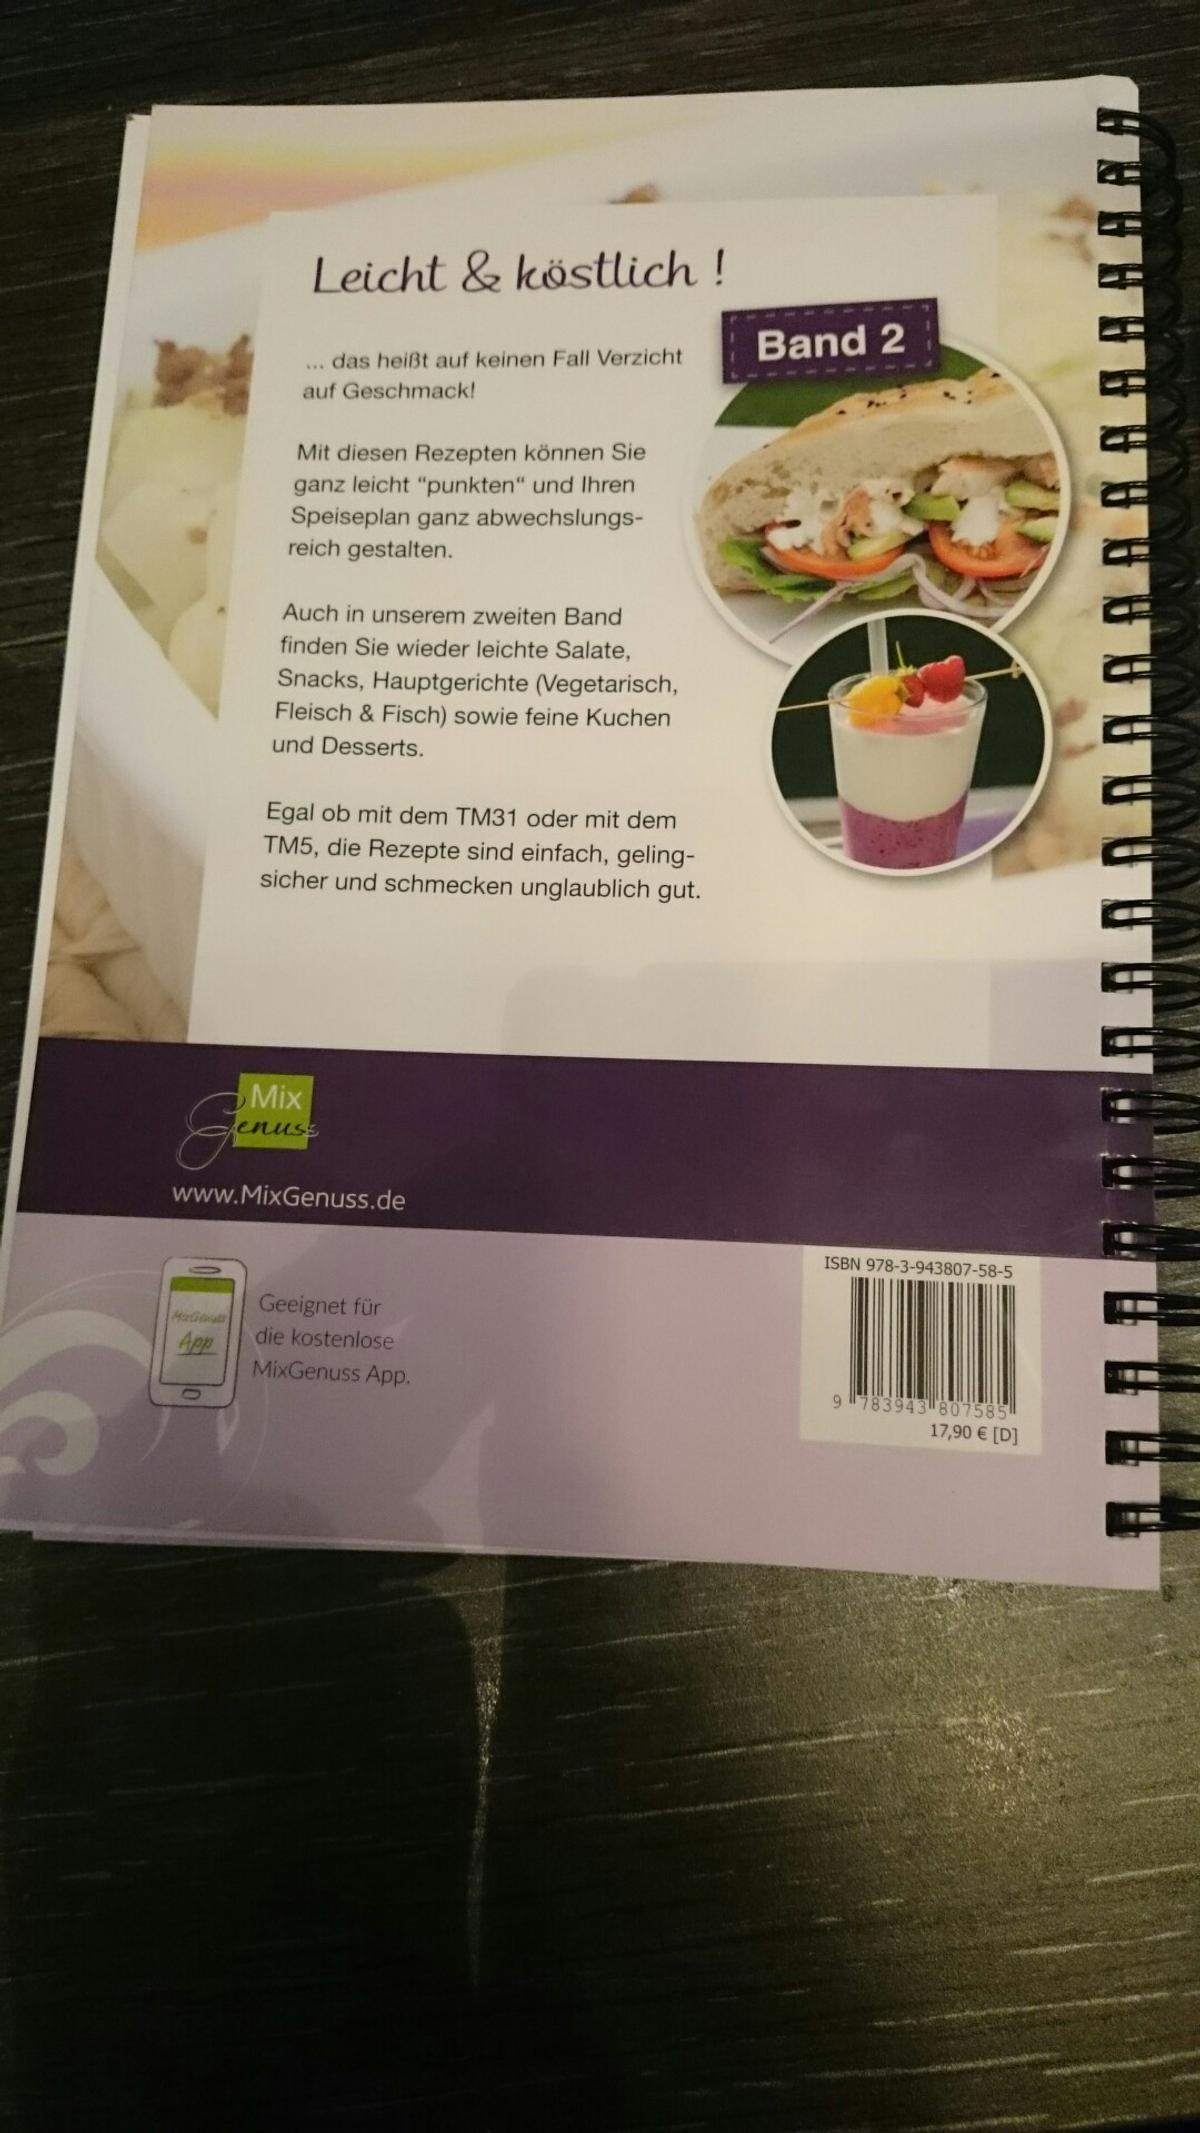 Thermomix Tm5 Leichte Küche Mix Genuss Thermomix Bücher In 92421 Schwandorf For €15.00 For Sale | Shpock